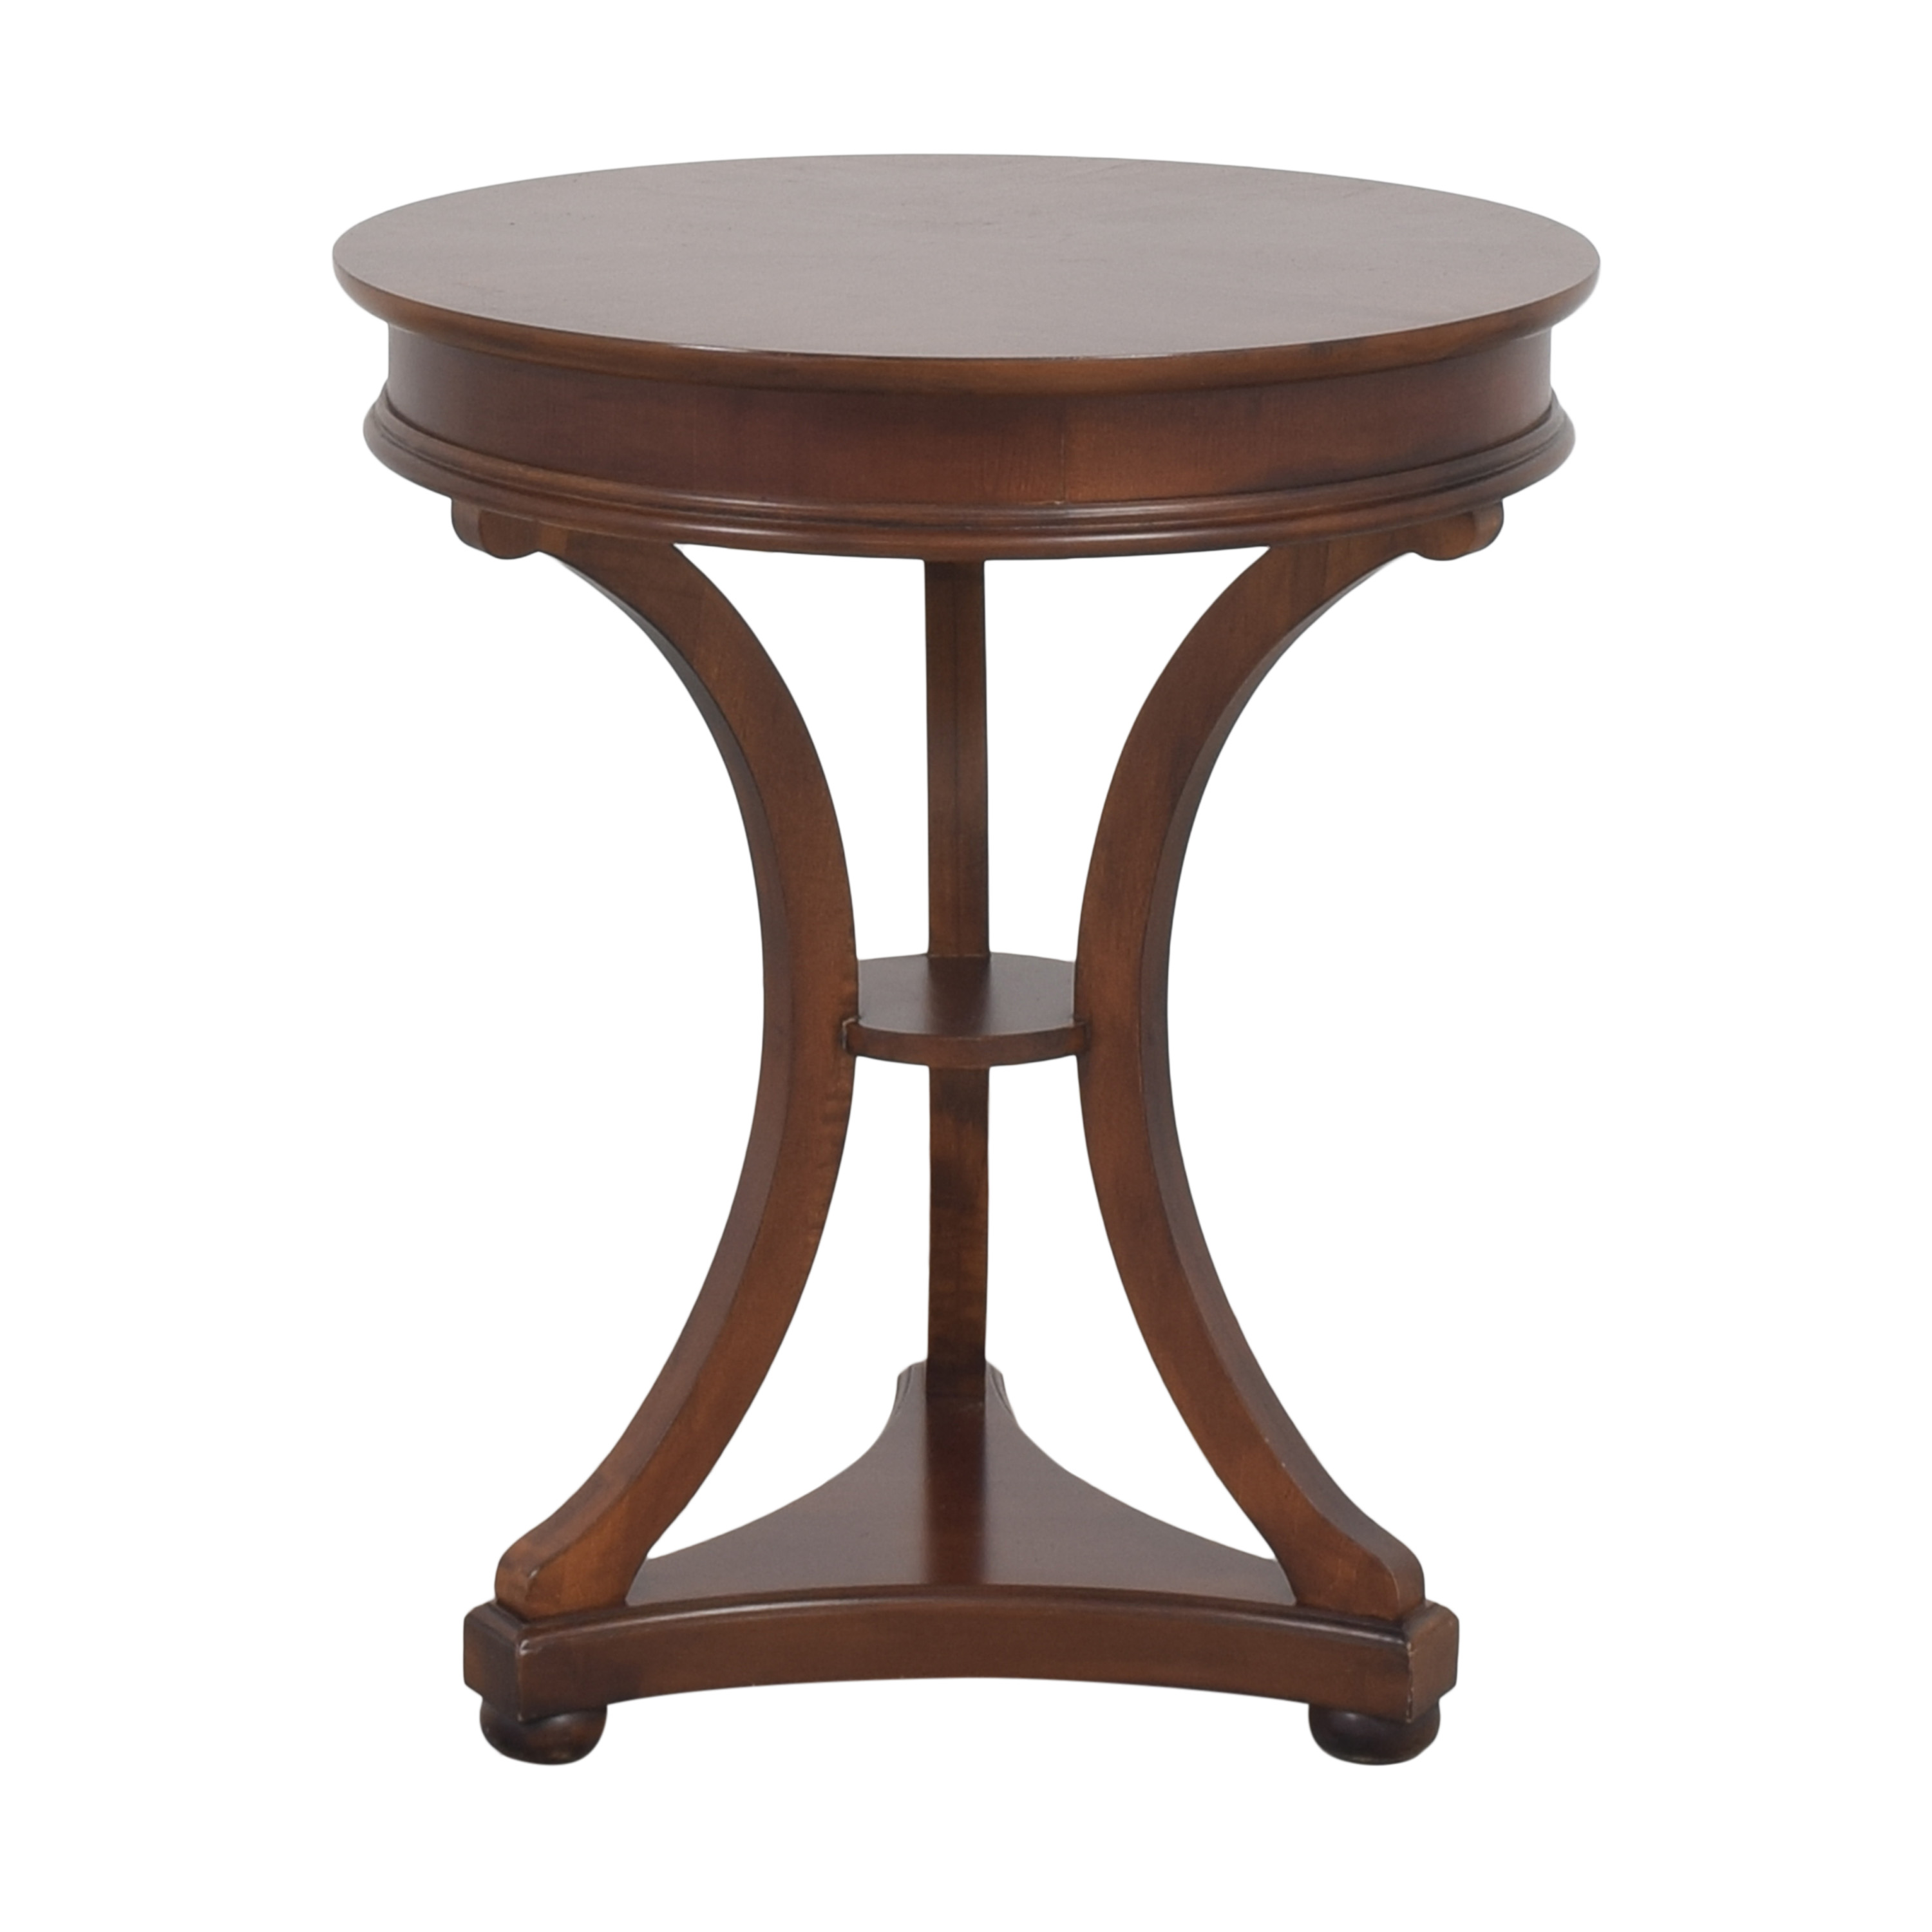 Drexel Heritage Drexel Heritage Round Accent Table for sale